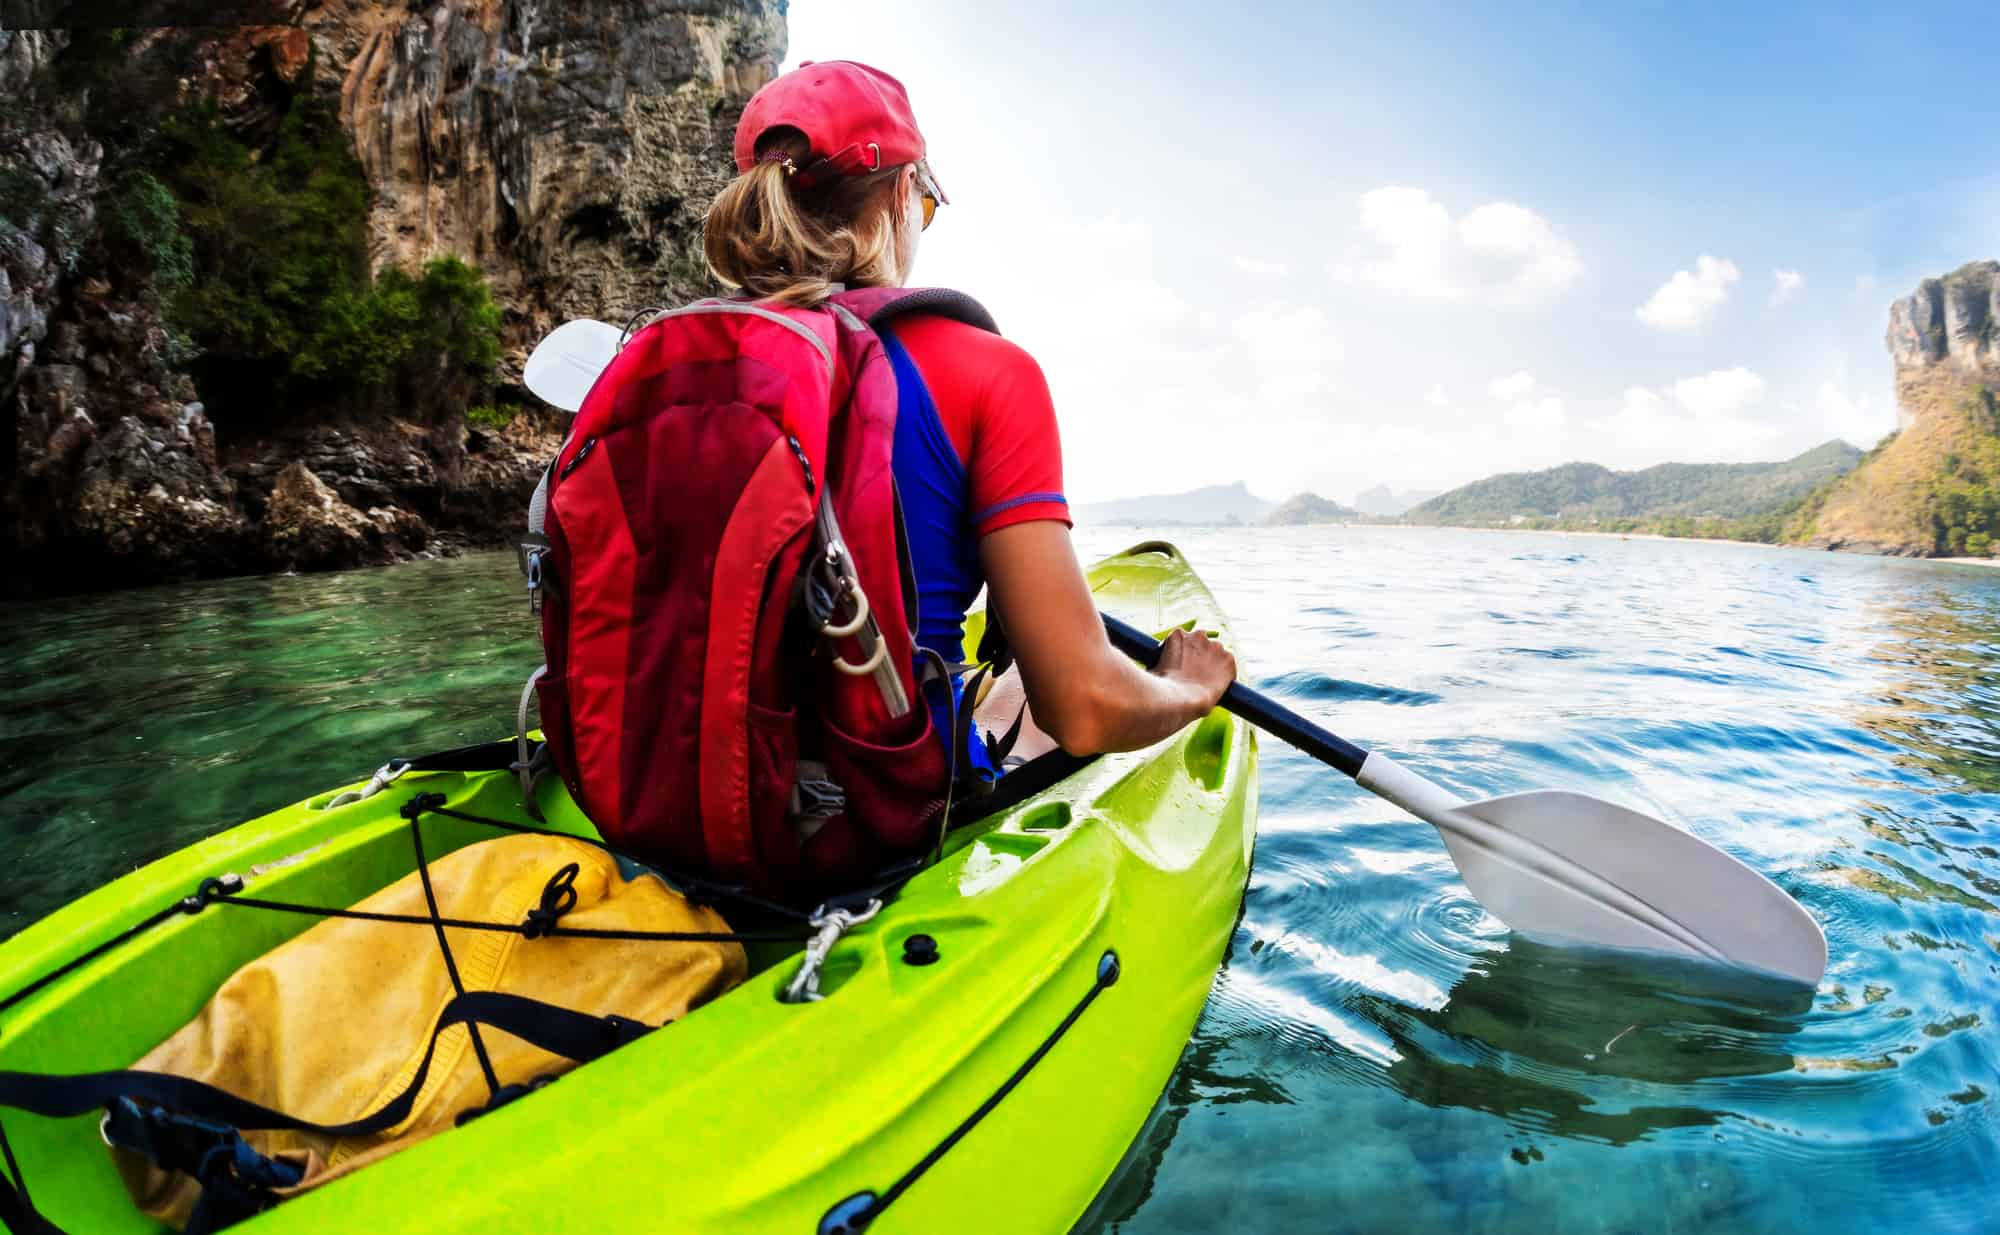 How to Waterproof a Backpack by putting it into a dry sack in a kayak